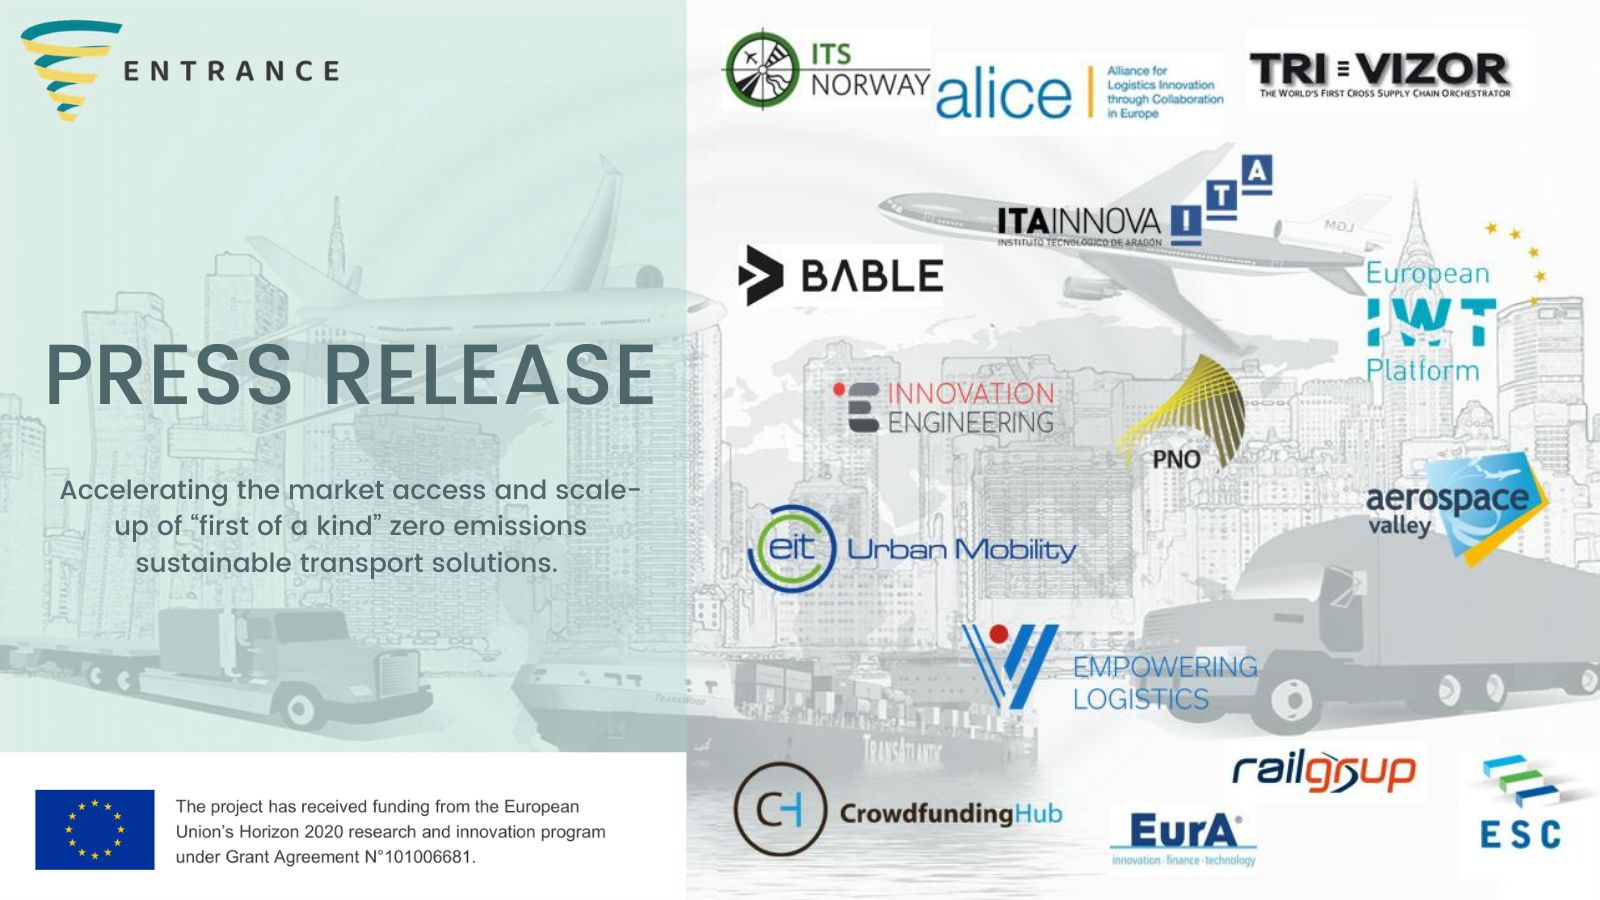 Launch of ENTRANCE H2020 project